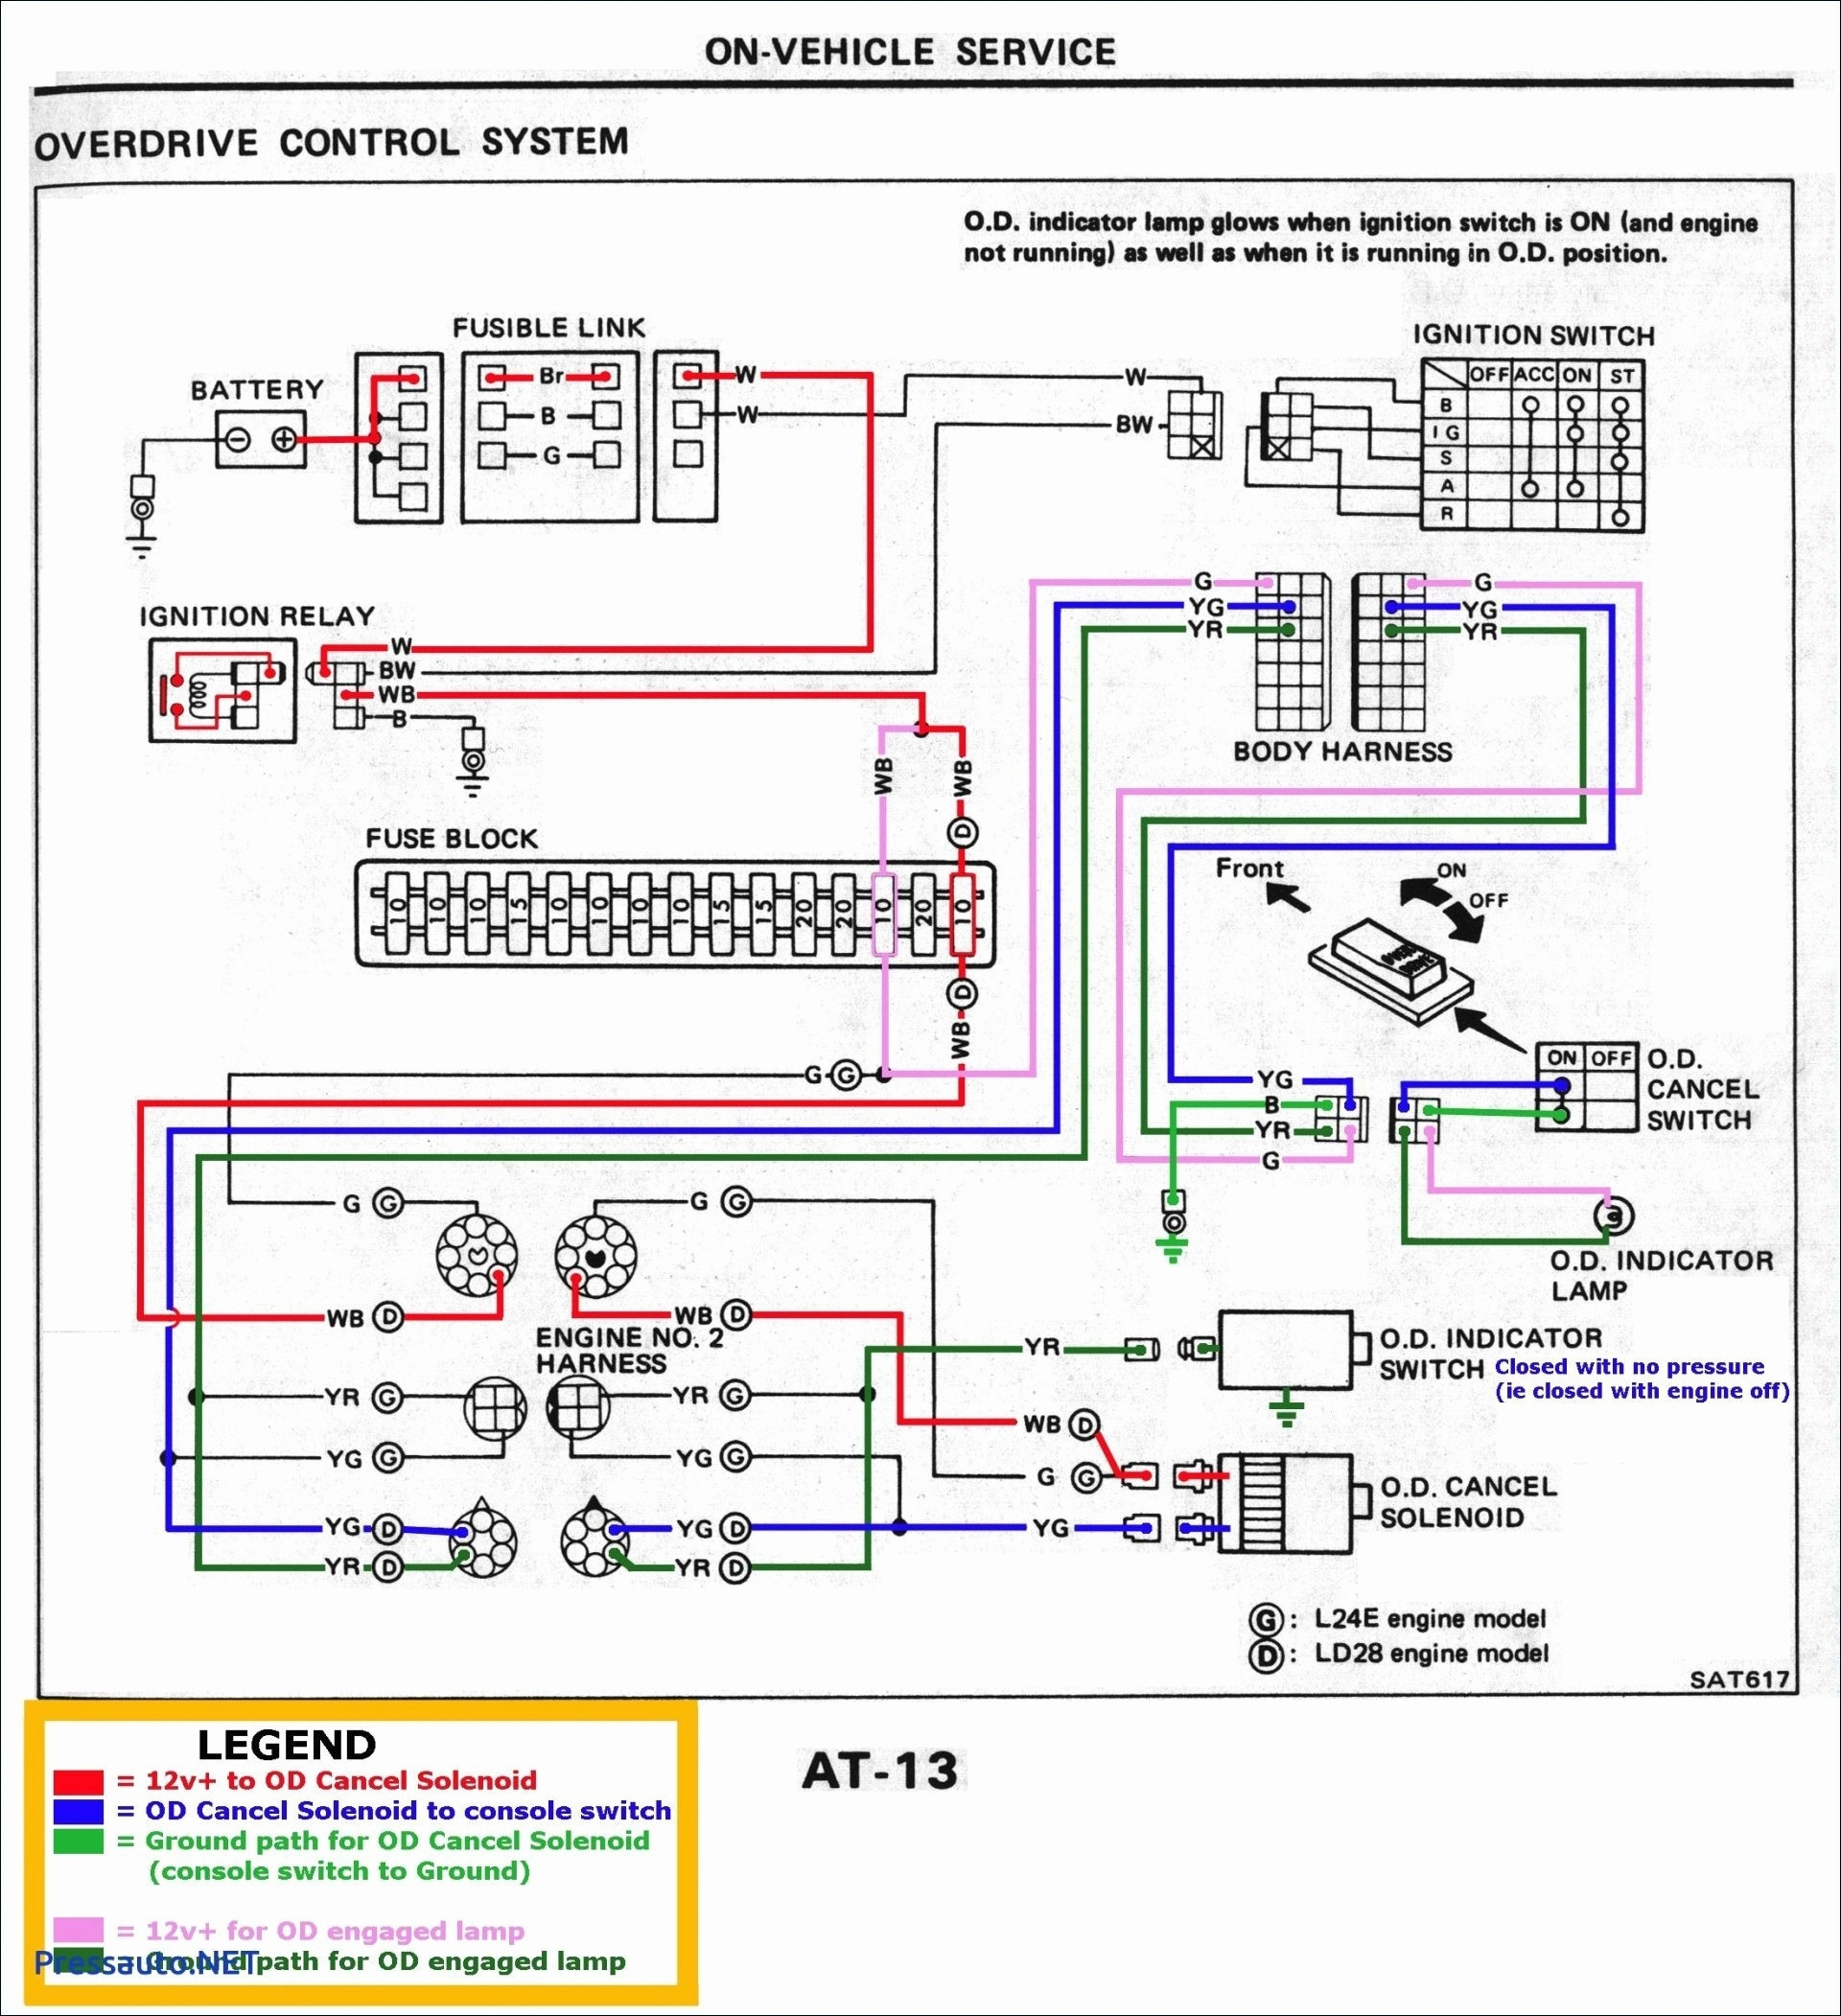 bently nevada accelerometer wiring diagram Collection-4 Wire Strobe Light Wiring Diagram Relay Kit Wiring Diagram Fresh Glow Relay Wiring Diagram 14-s